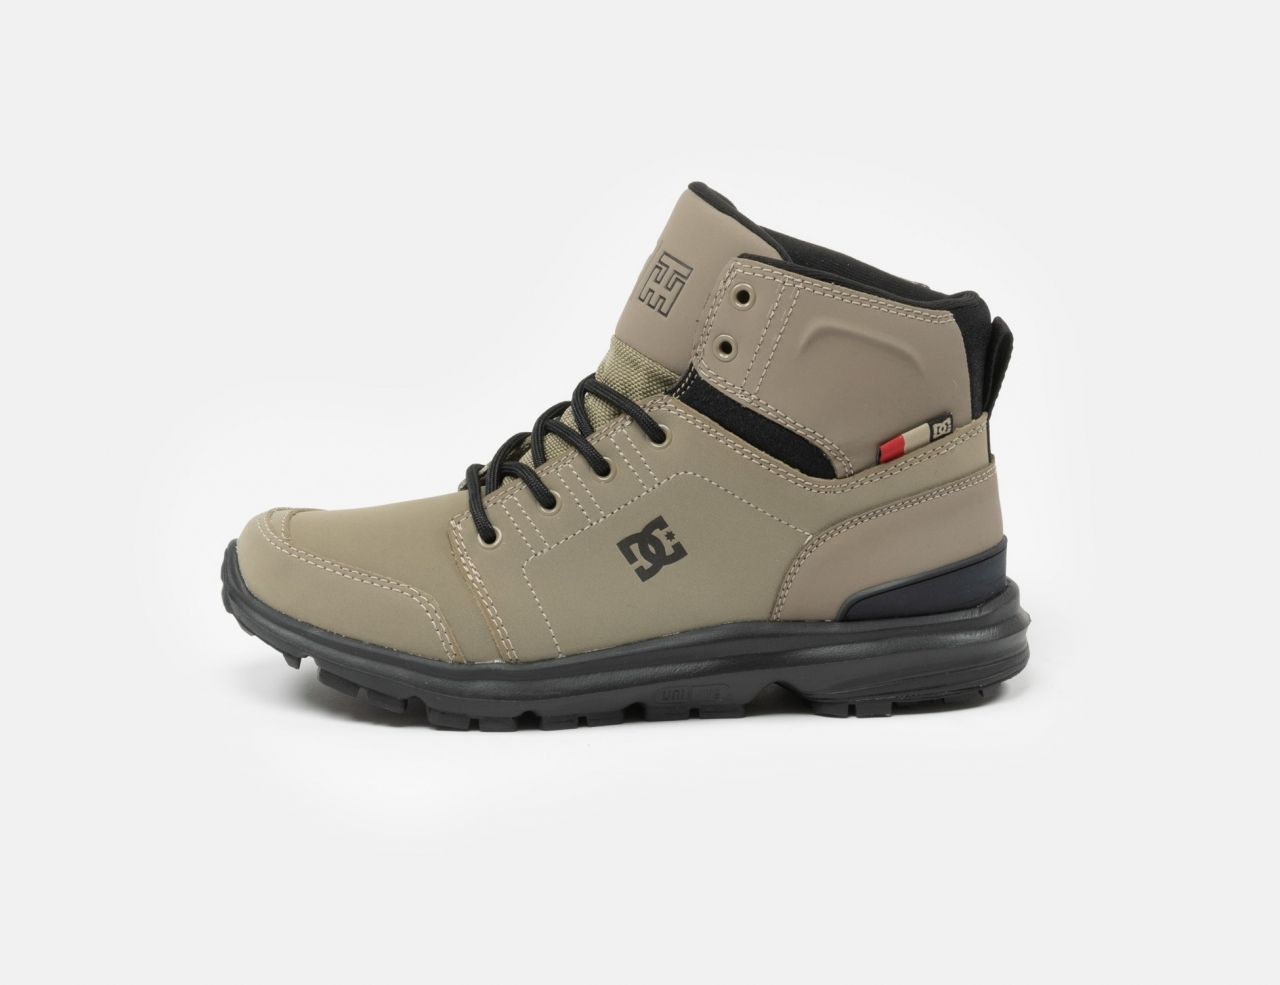 DC Shoes Torstein Boots - Timber